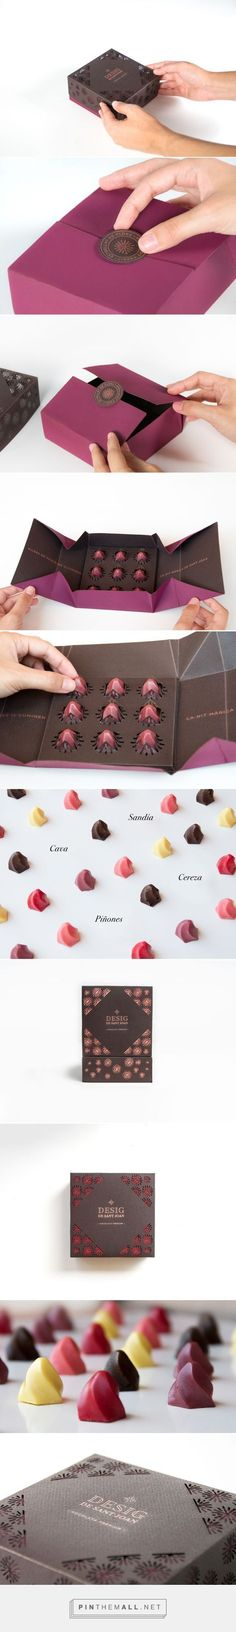 Branding and packaging for Desig de Sant Joan on Behance curated by Packaging Diva PD. Wow, look at this die-cut candy packaging design. Yummy.